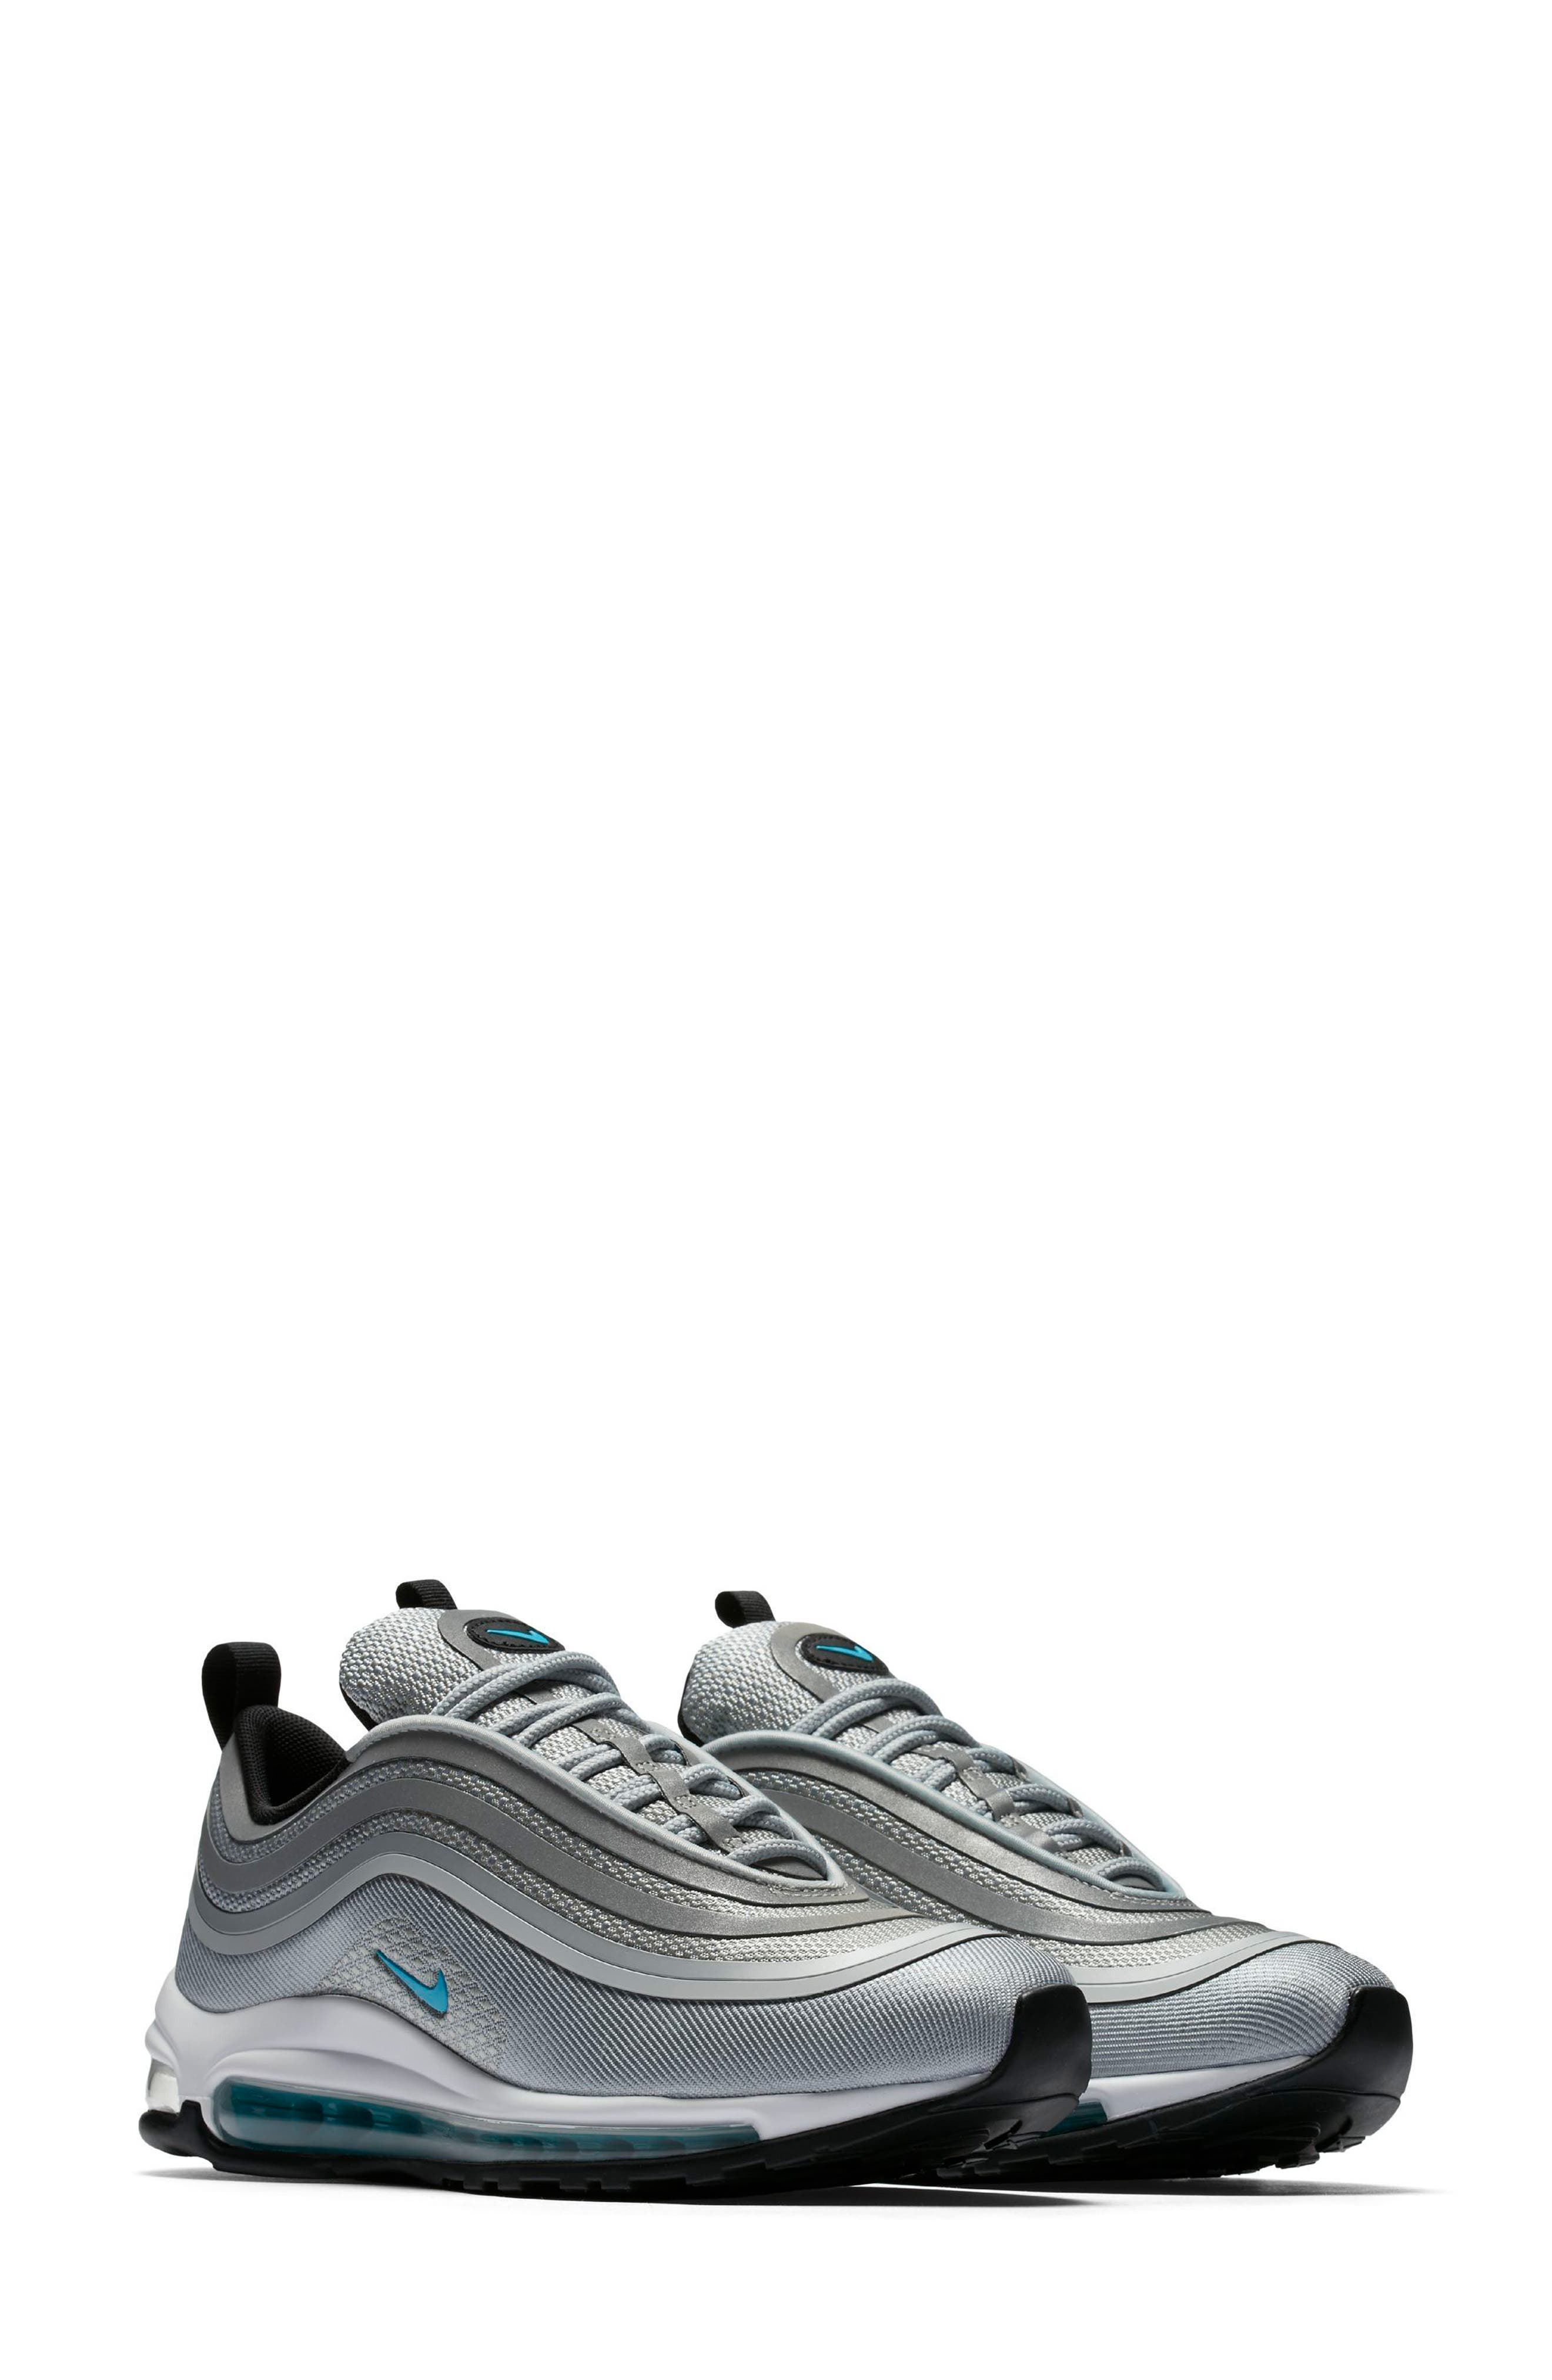 Air Max 97 Ultralight 2017 Sneaker,                         Main,                         color, 020